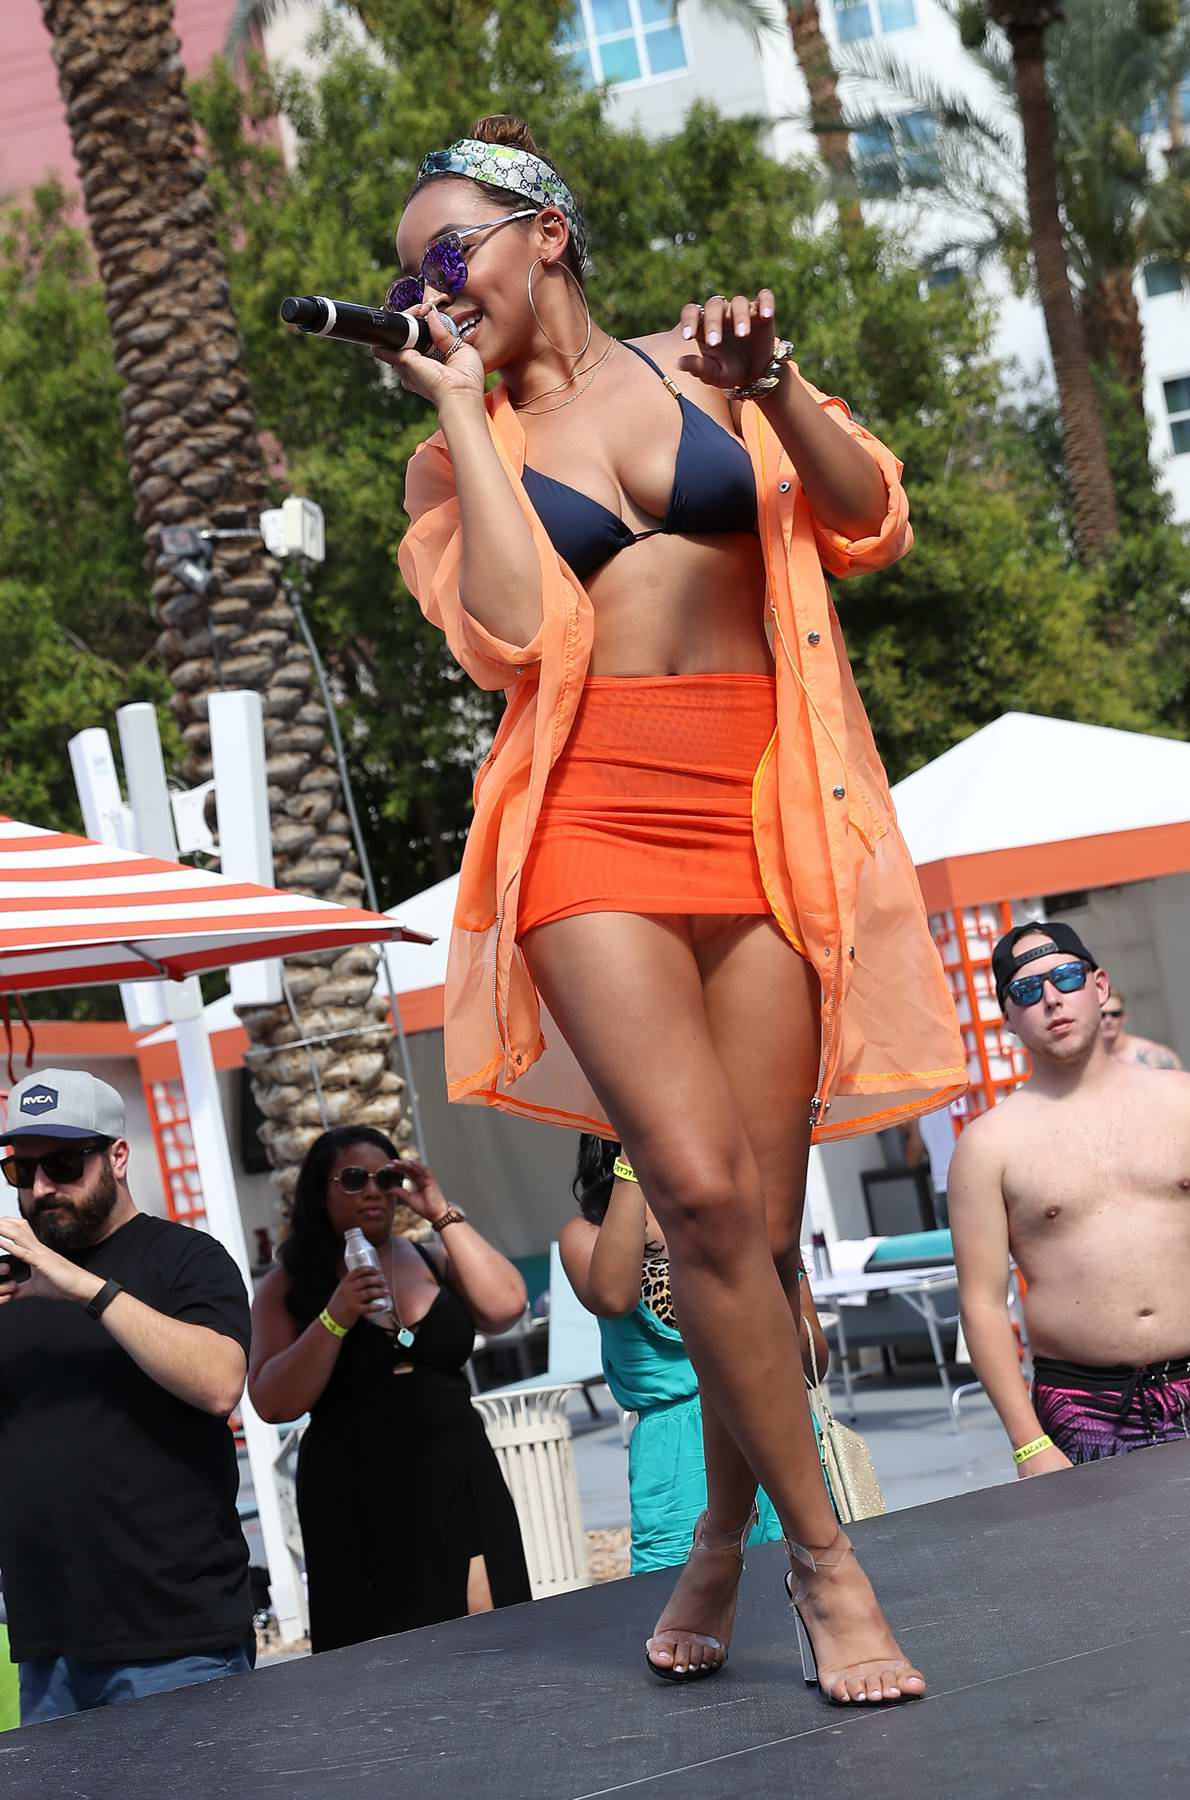 Tinashe performs live at Go Pool inside Flamingo Hotel and Casino in Las Vegas